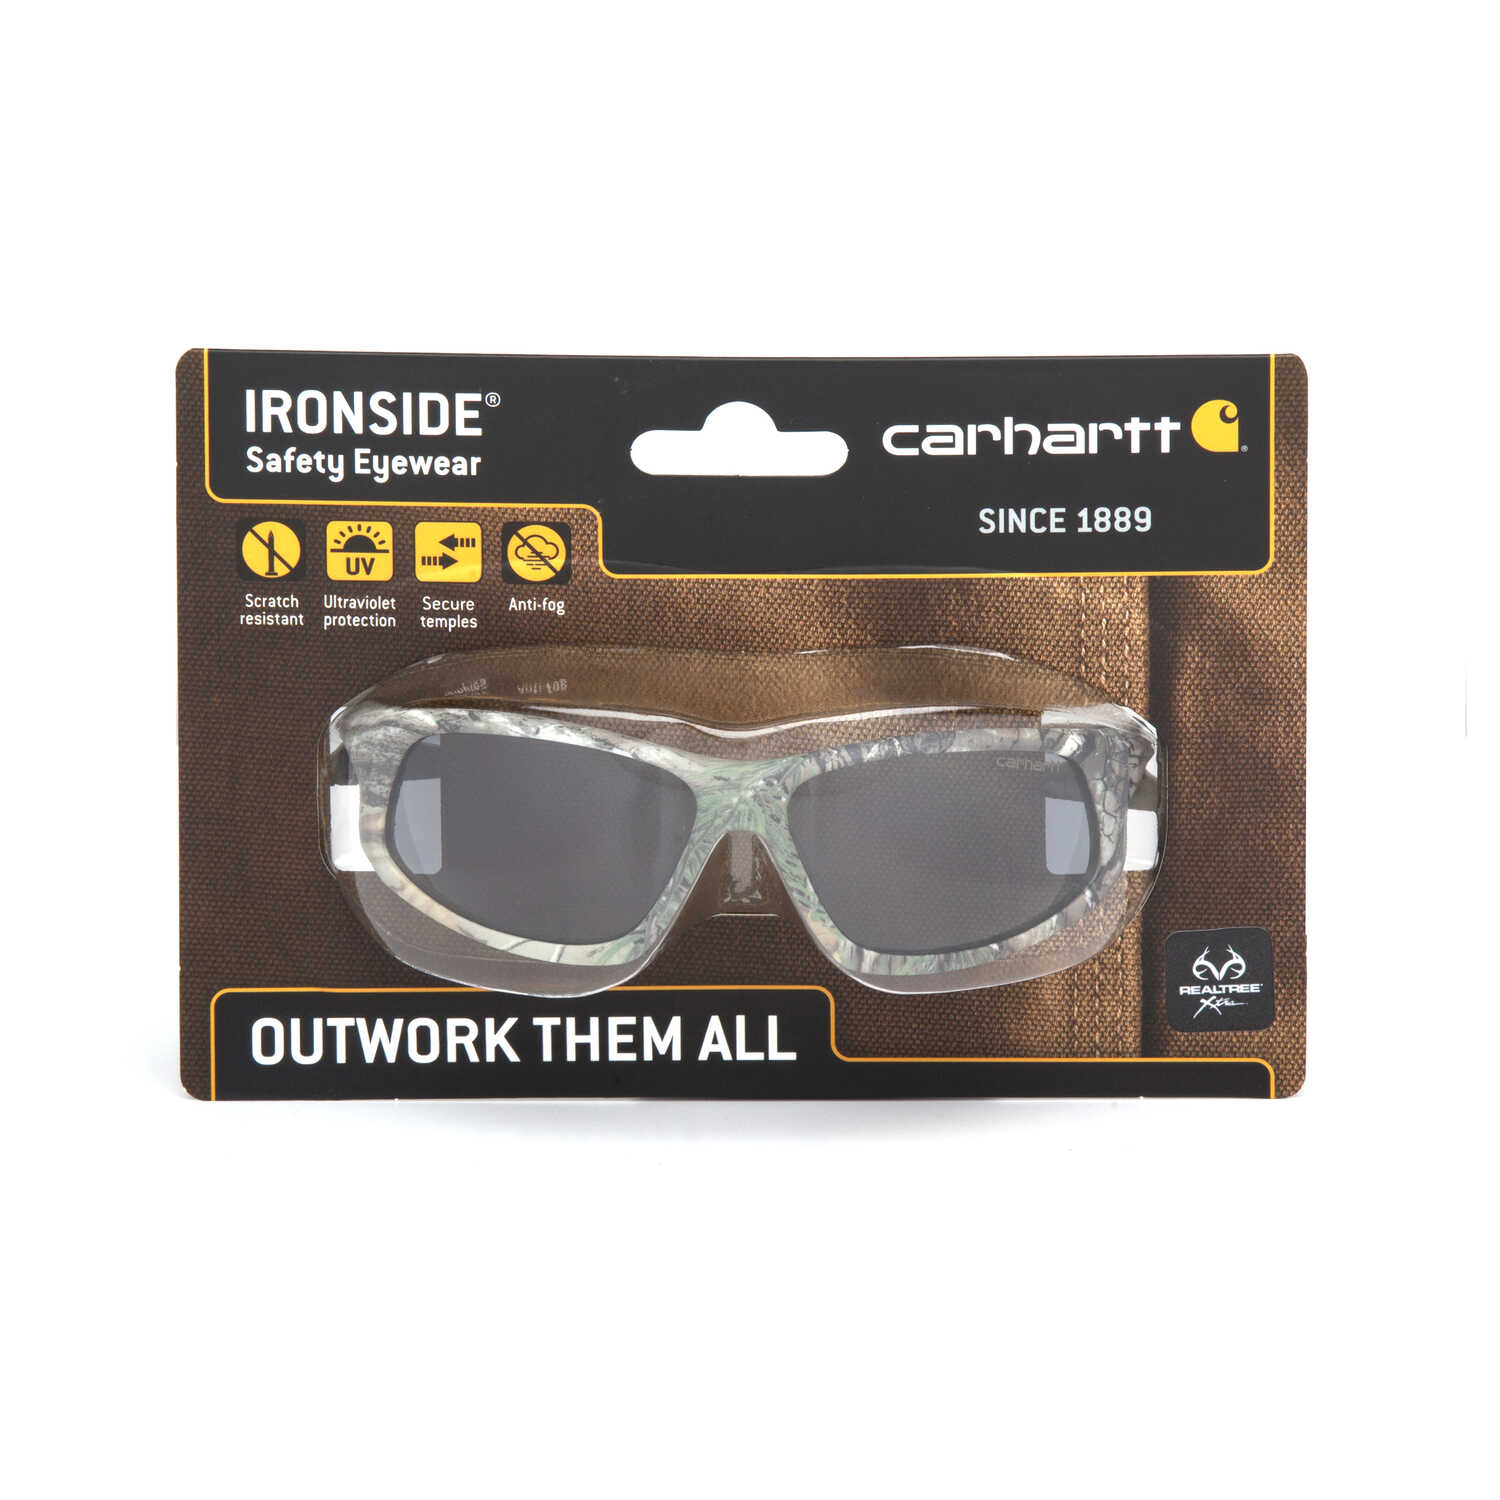 Carhartt  Ironside  Anti-Fog Safety Glasses  Gray Lens Realtree Camo Frame 1 pc.